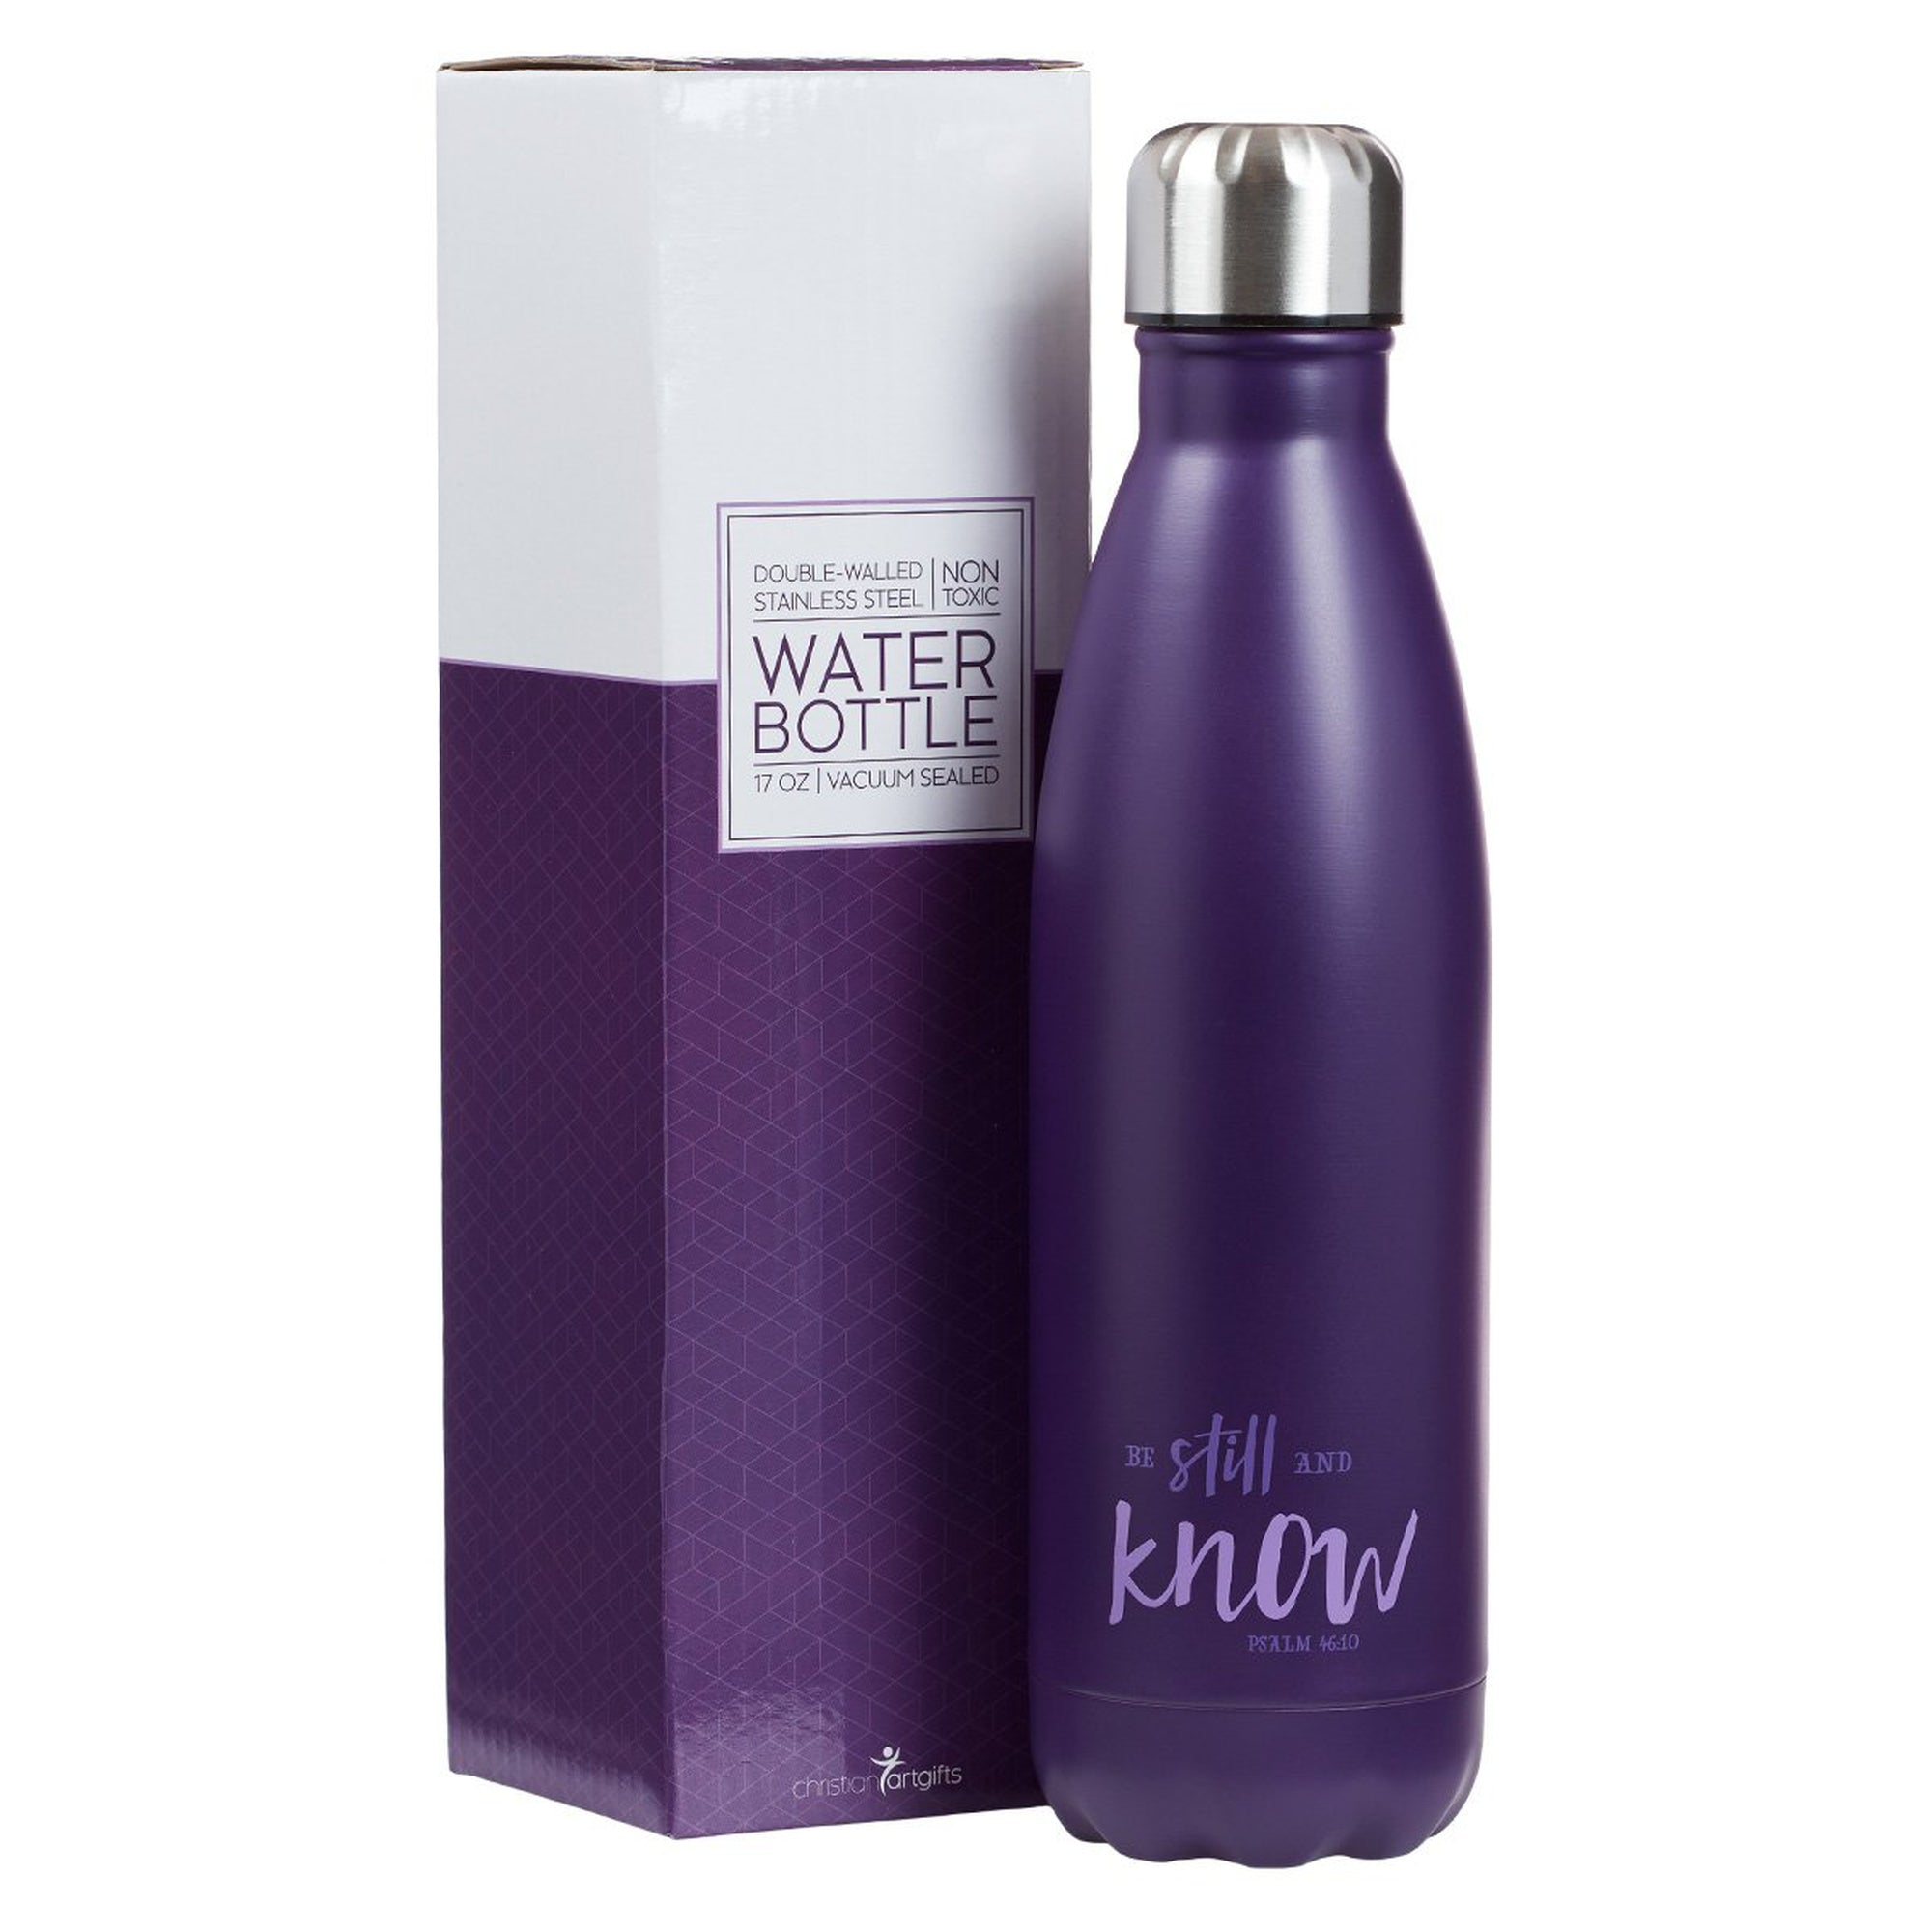 Be Still in Purple - Psalm 46:10 Stainless Steel Water Bottle